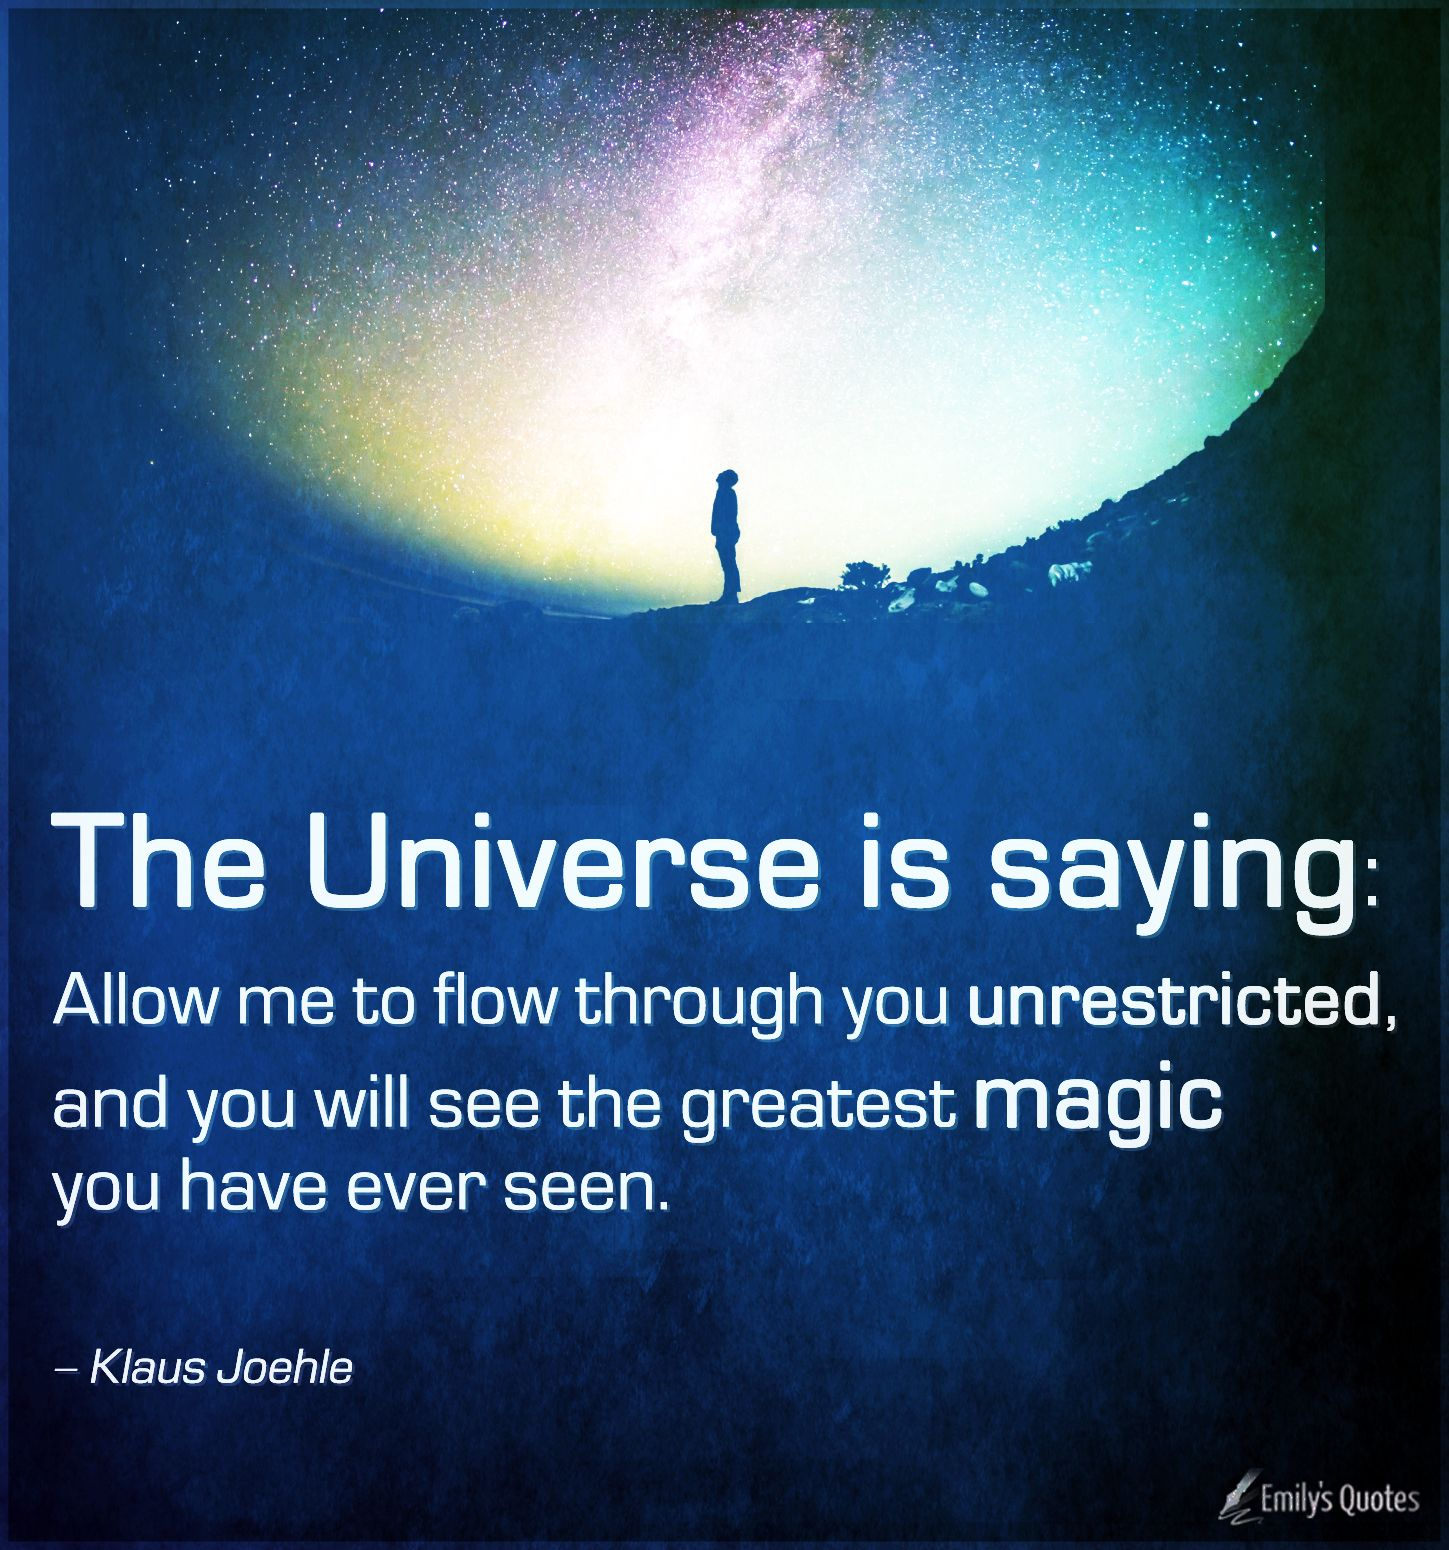 The Universe is saying – Allow me to flow through you unrestricted